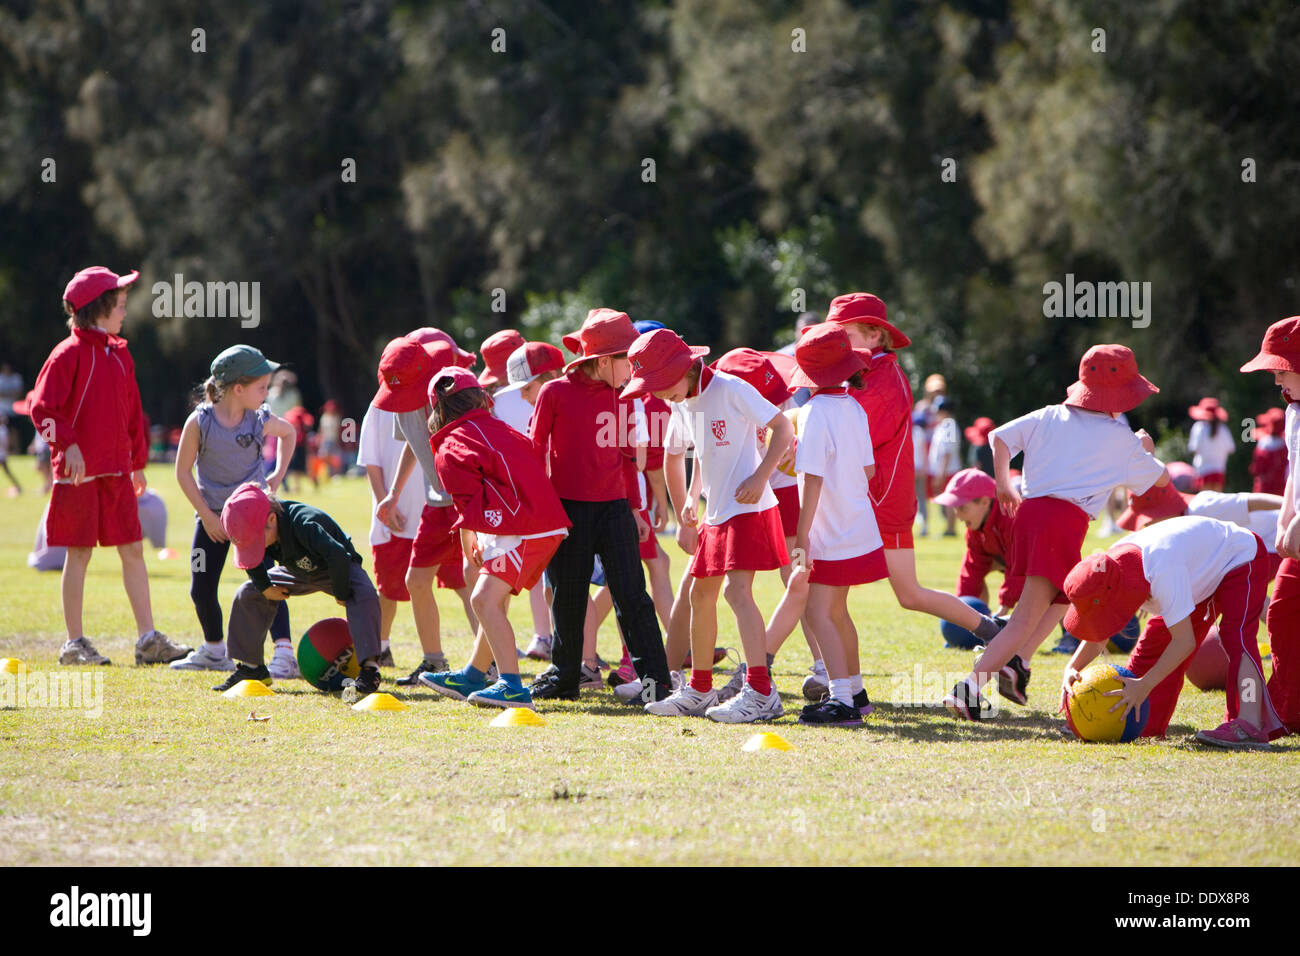 group of sydney primary school children playing sport and activities,avalon,sydney - Stock Image